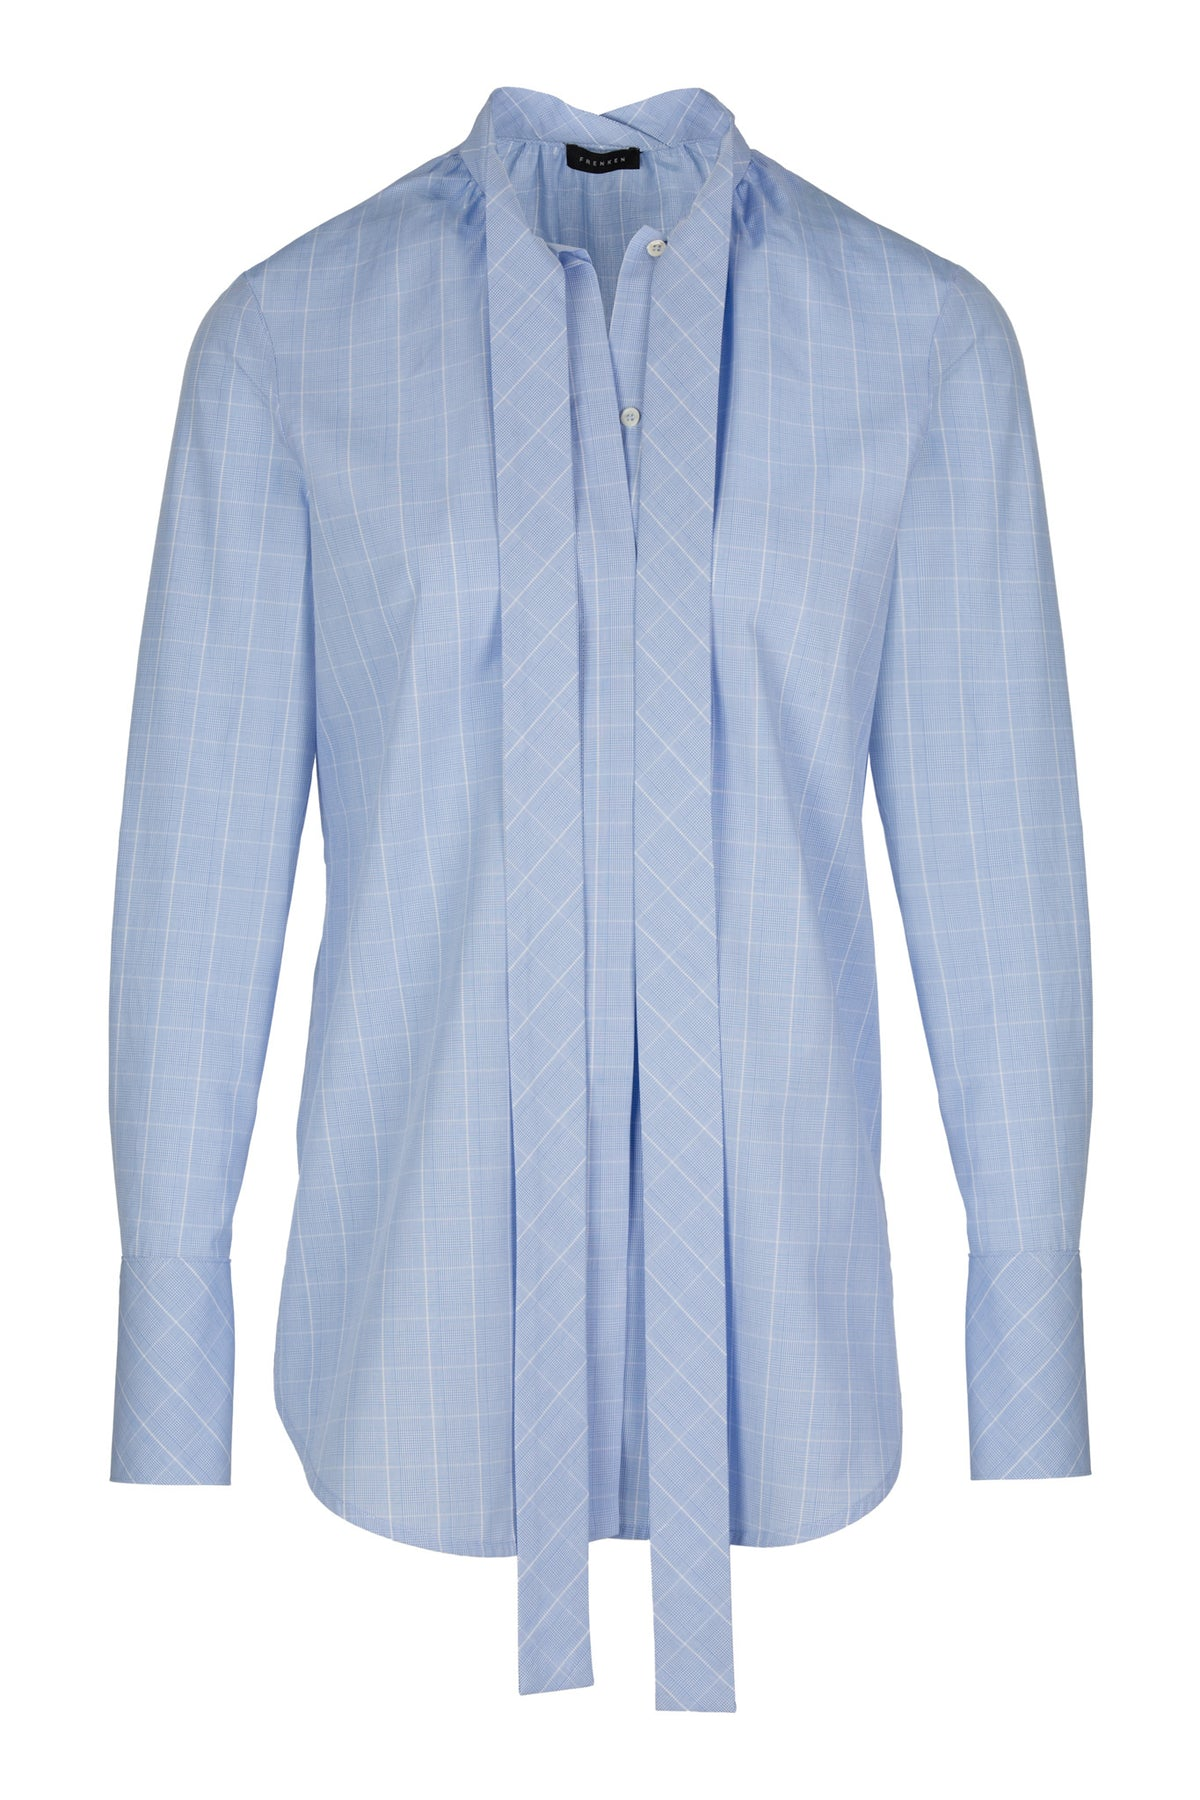 Counter | Shirt | Check Light Blue